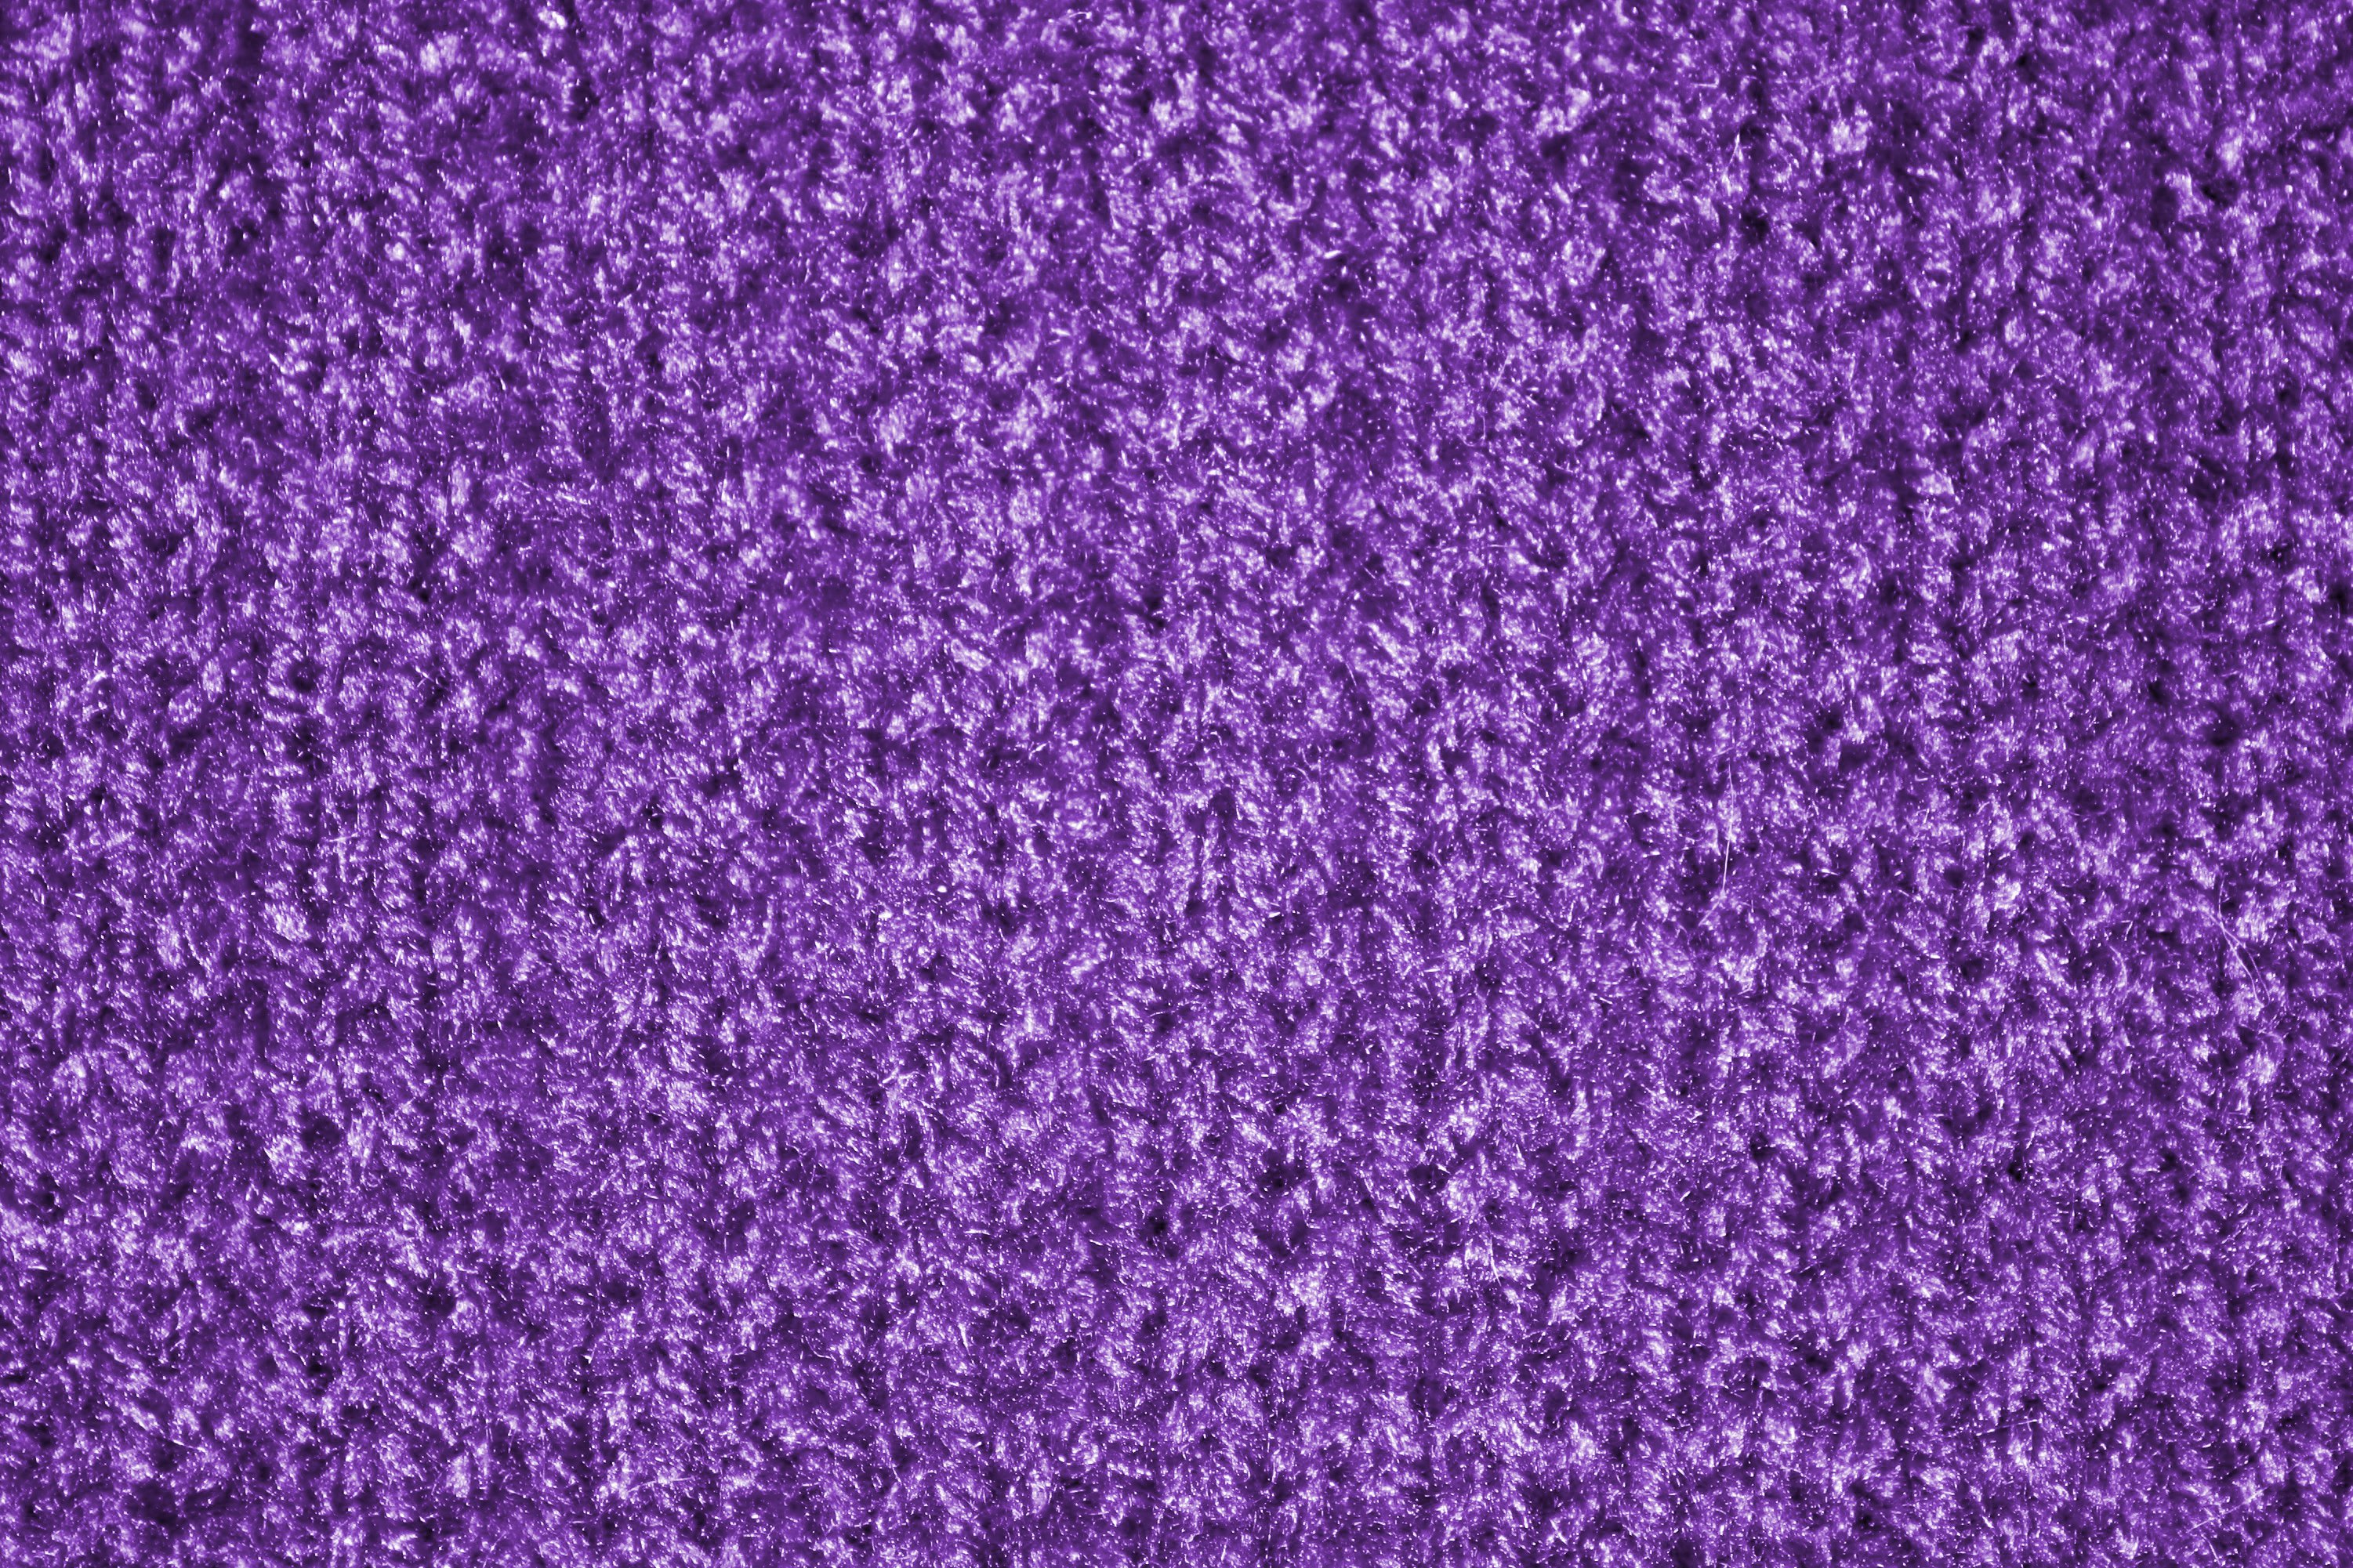 Knitting Yrn Meaning : Purple knit yarn texture picture free photograph